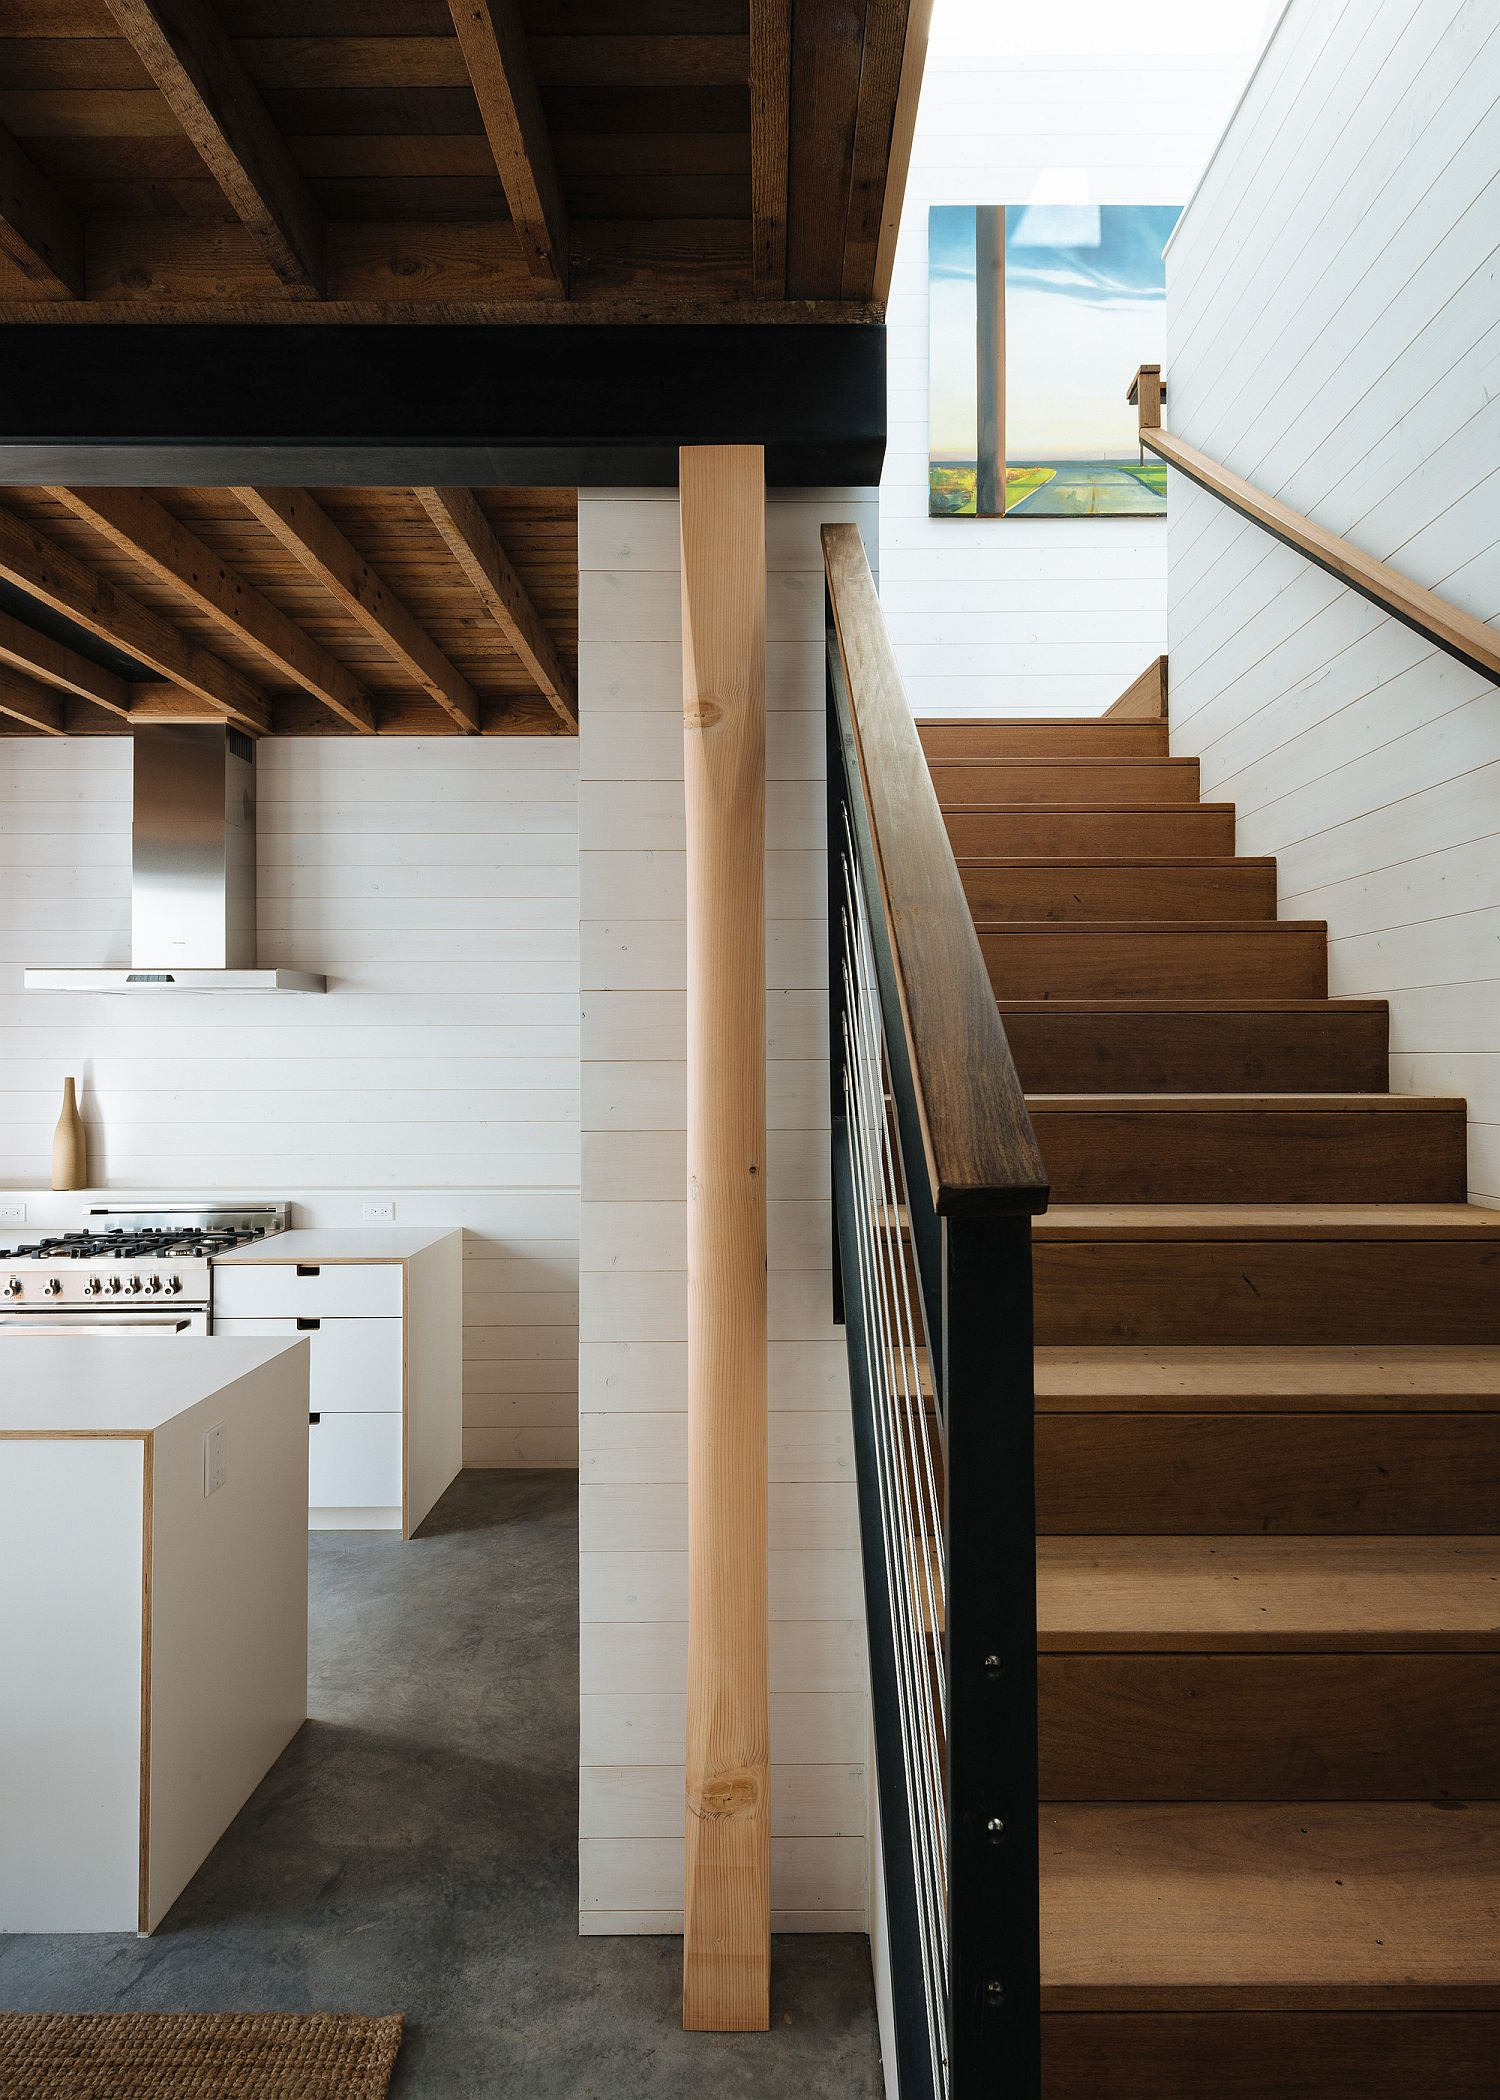 Wood, white and natural light shape the interior of the transformed house